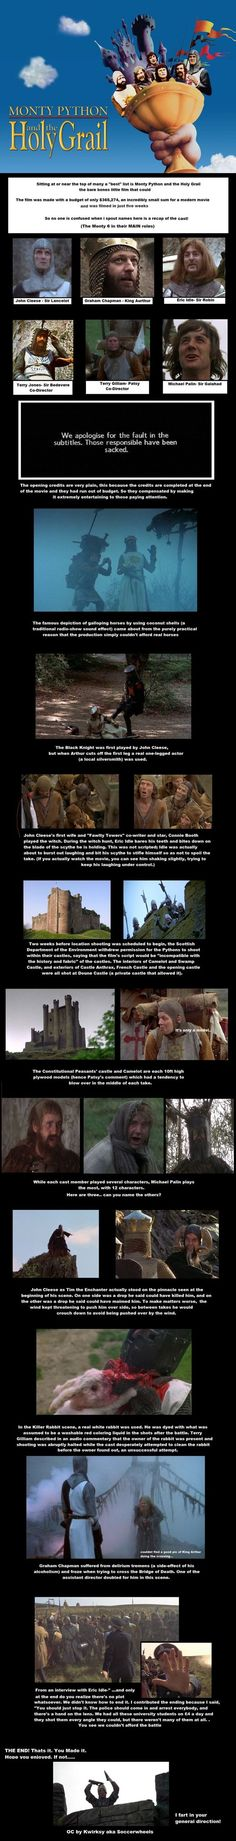 Monty Python and the Holy Grail Facts!